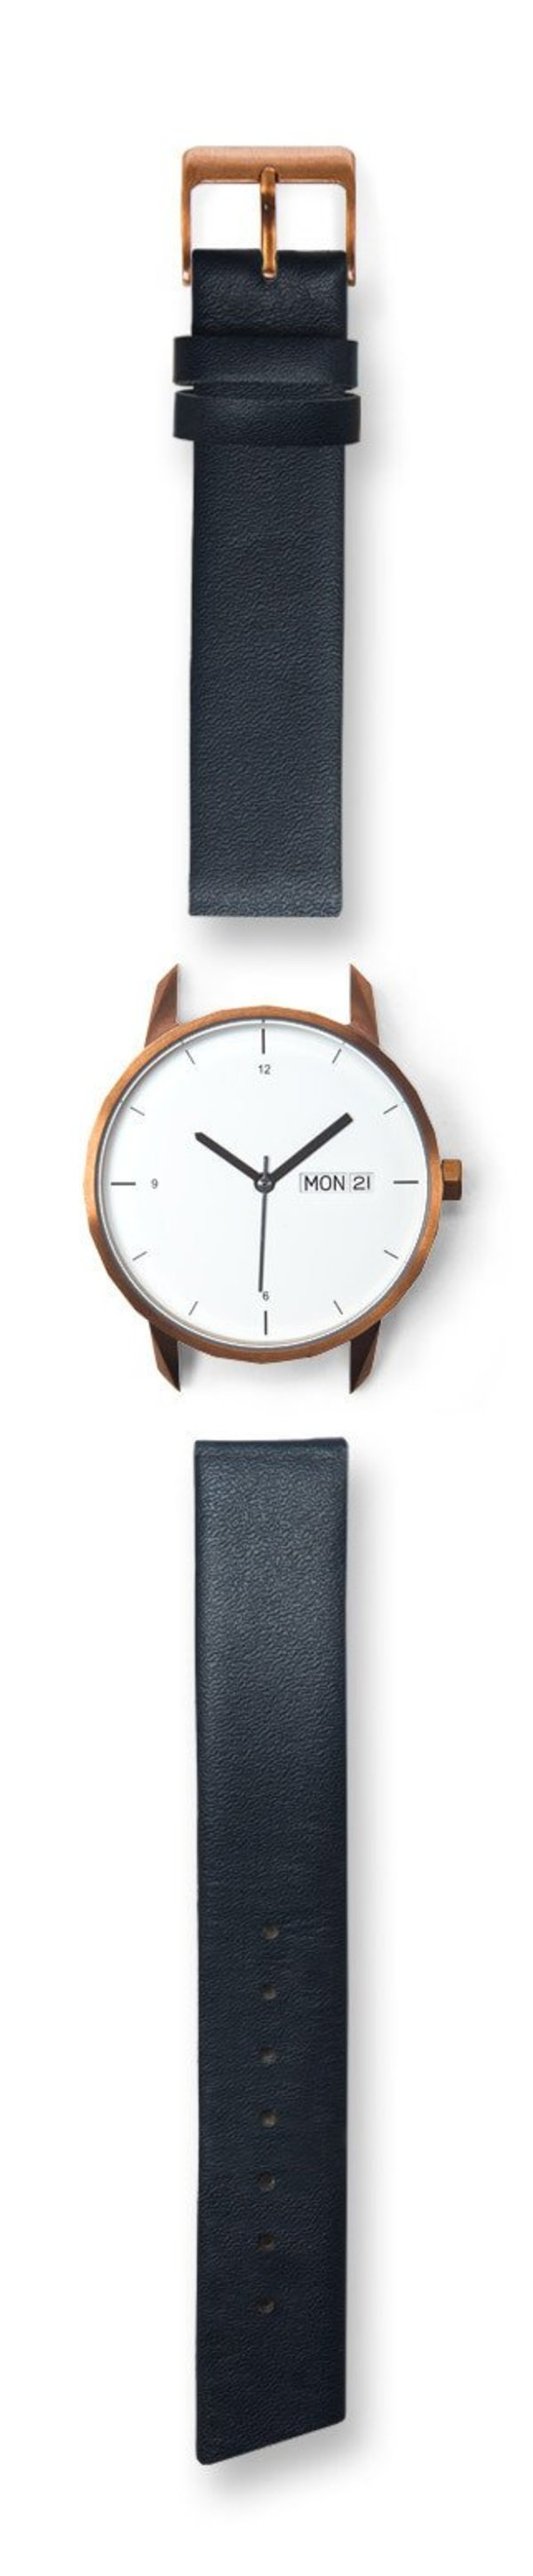 Tinker Watches 38mm Copper Watch Navy Strap